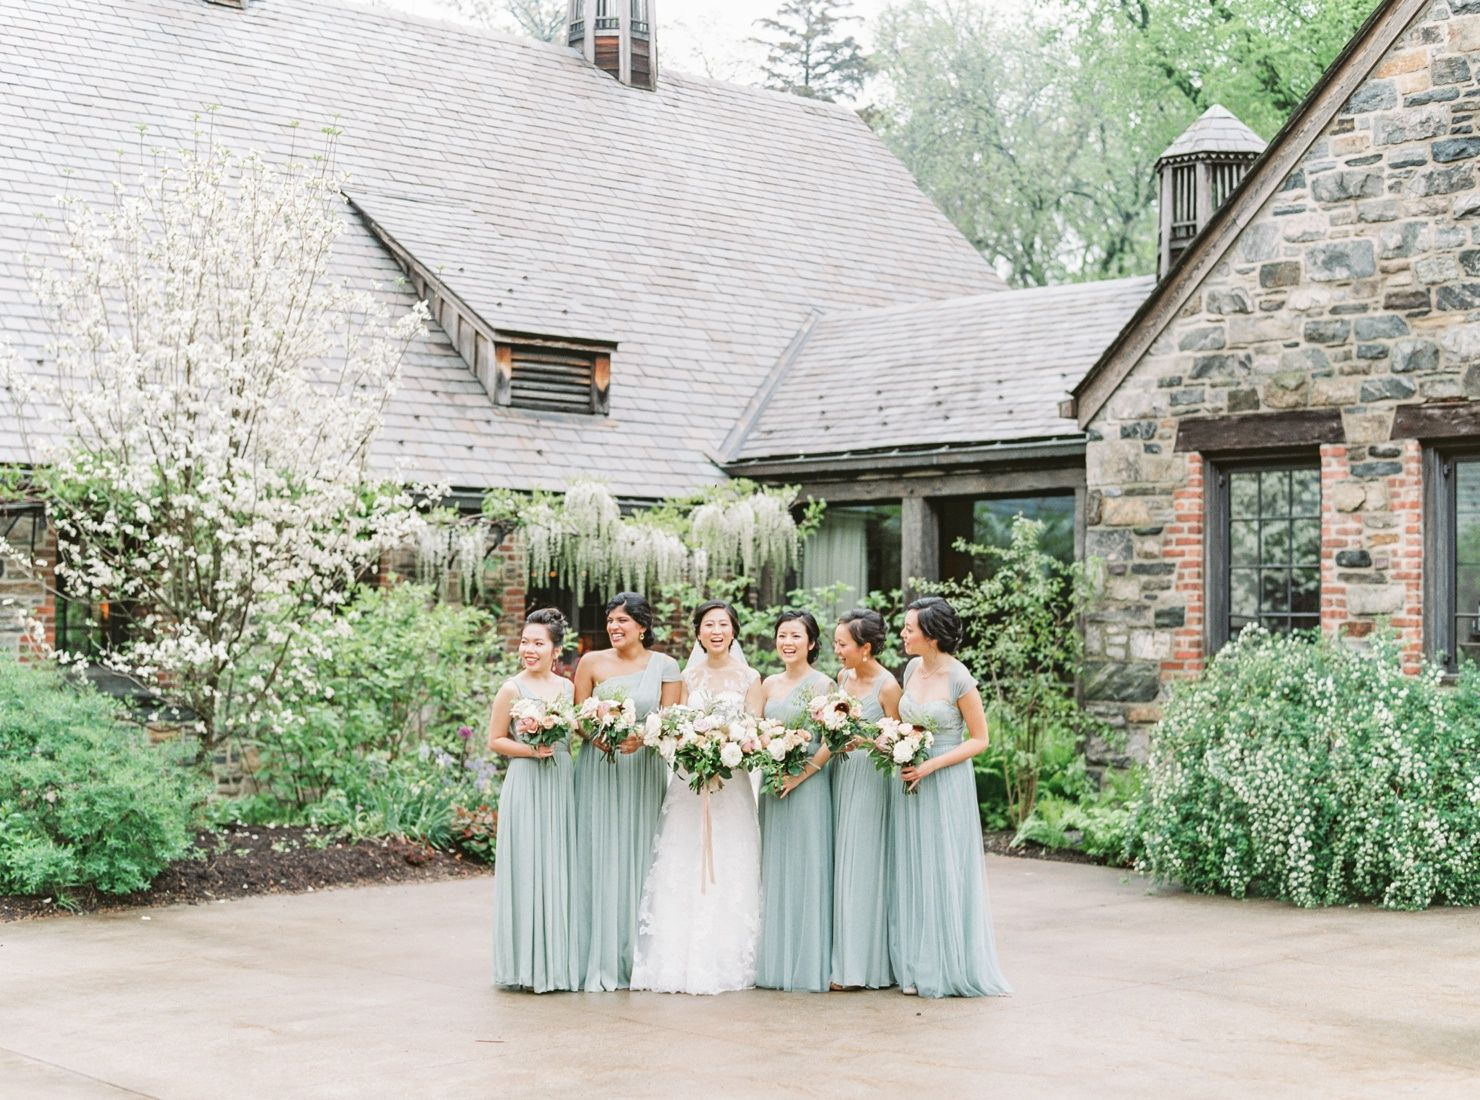 We had been looking forward to Katherine + David's wedding all year! These two are absolutely adorable together, so kind and generous with their friends and family, and have killer style! (Just look at Katherine's stunning delicate lace illusion gown and David's sharp tailored blue tux!) Blue Hill at Stone Barns was such a breathtaking…